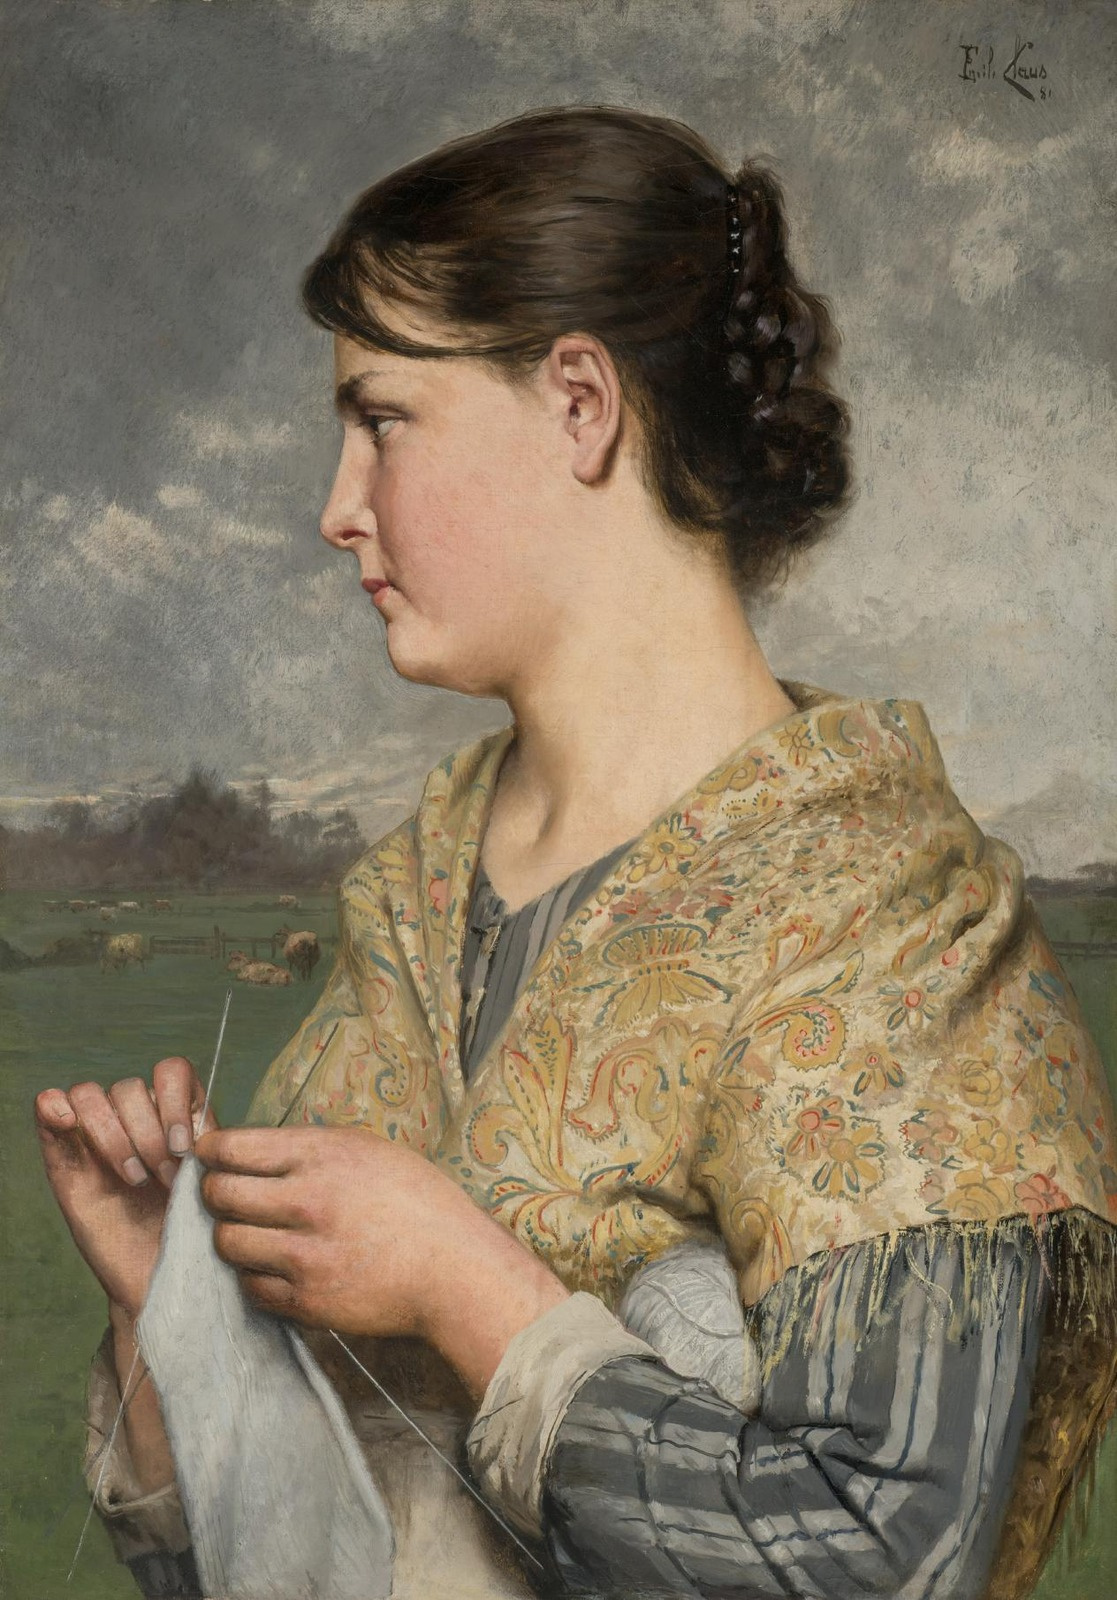 Emil Klaus. Woman with knitting